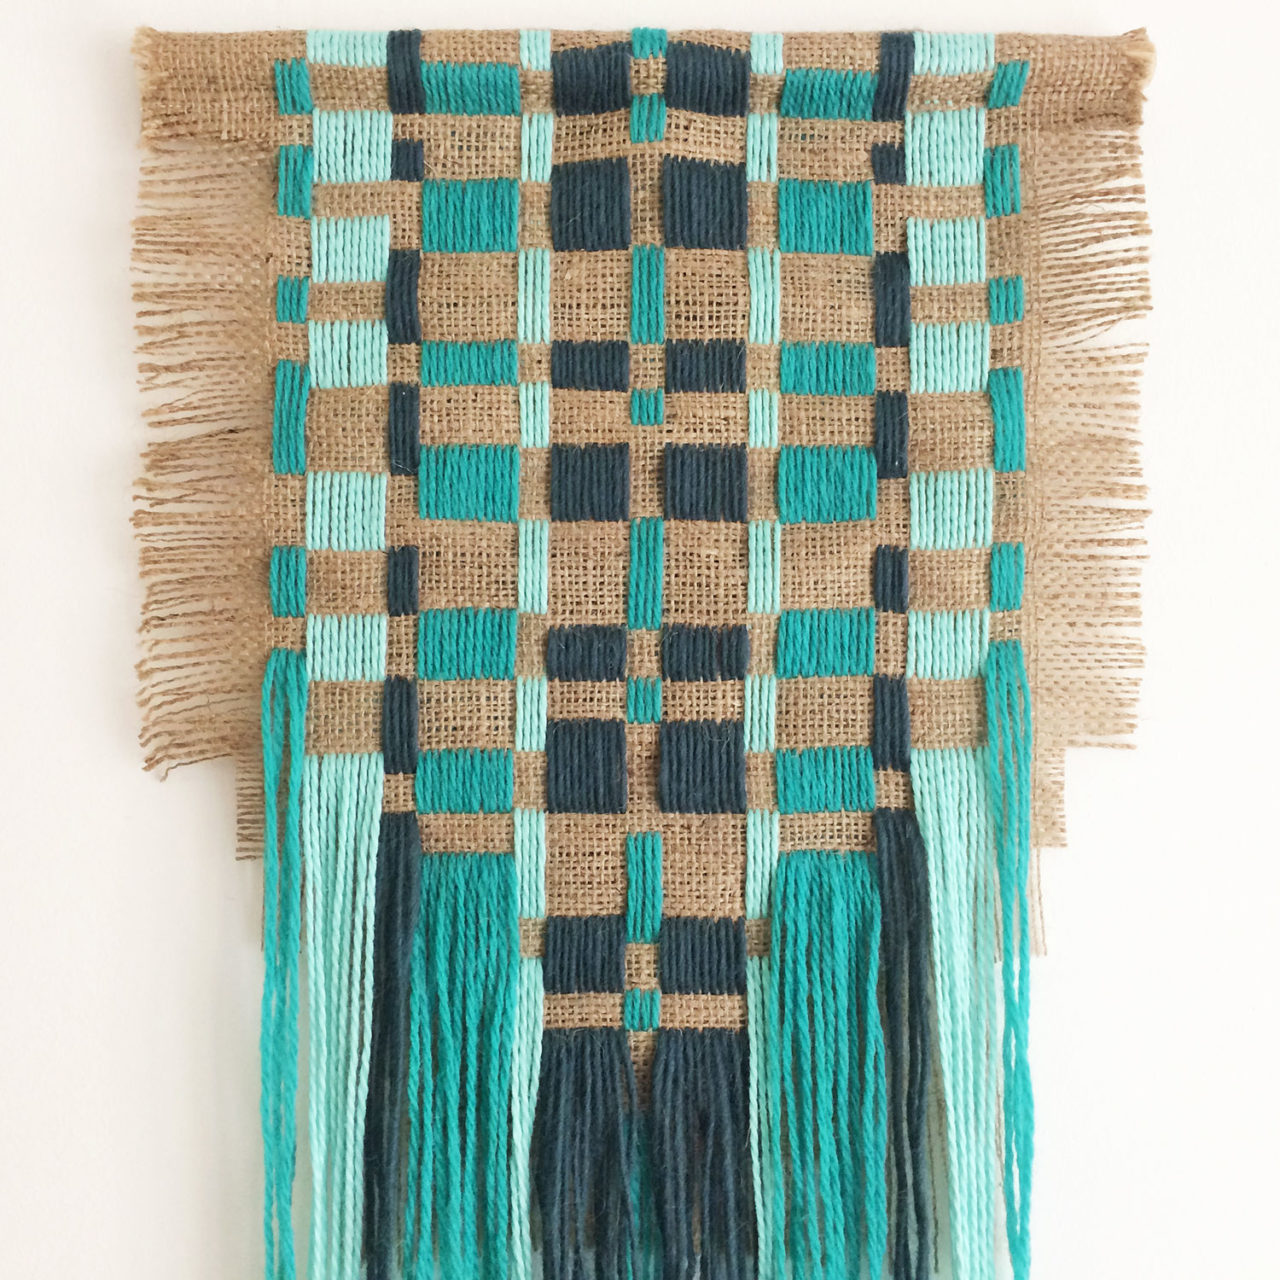 wallhanging_embroidered_burlap_mint_blue_2